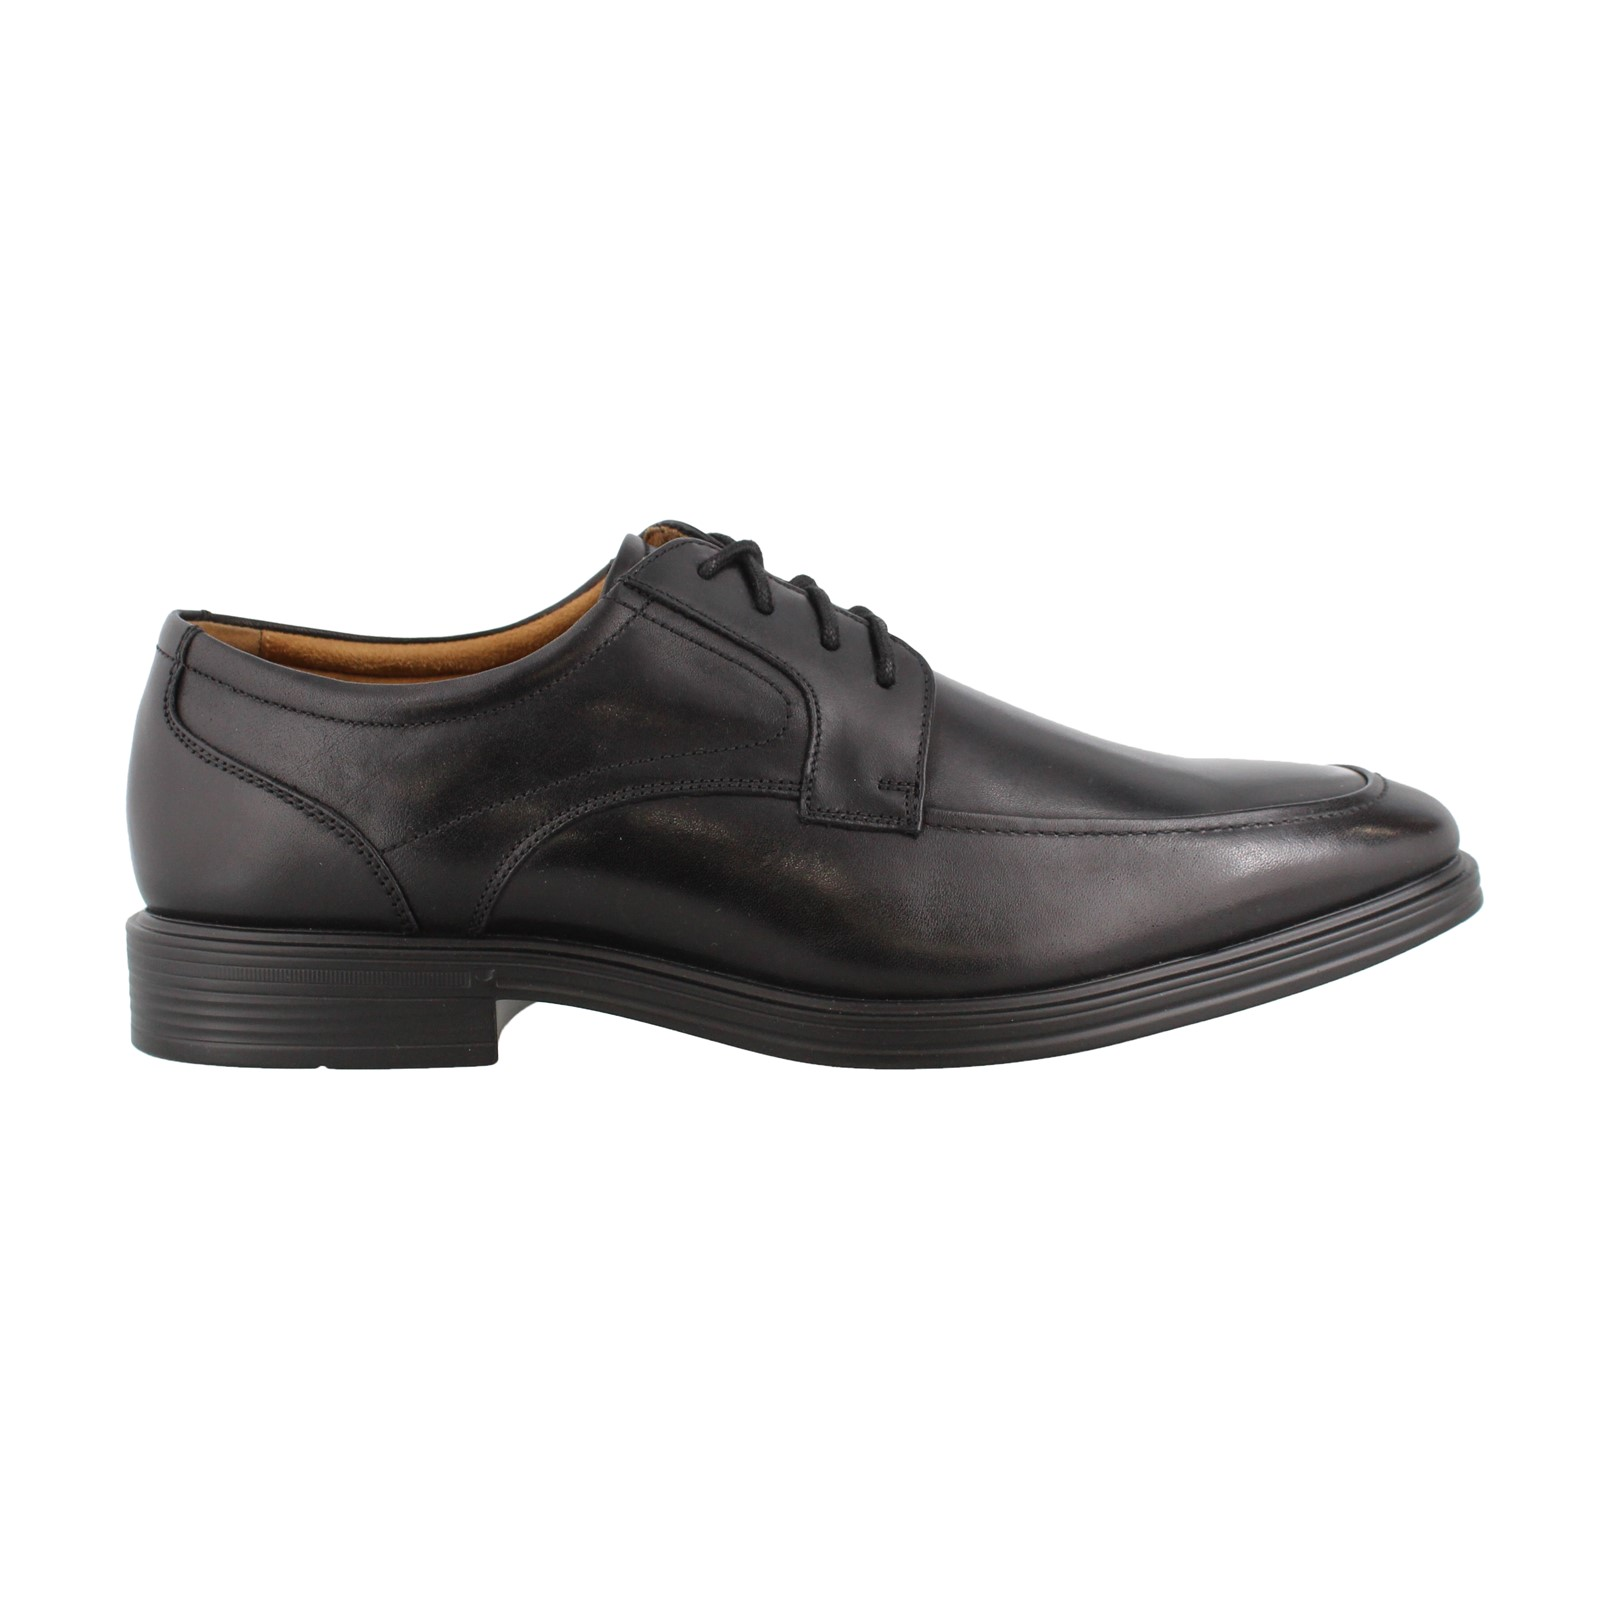 Men's Florsheim, Pinnacle Mox Oxfords